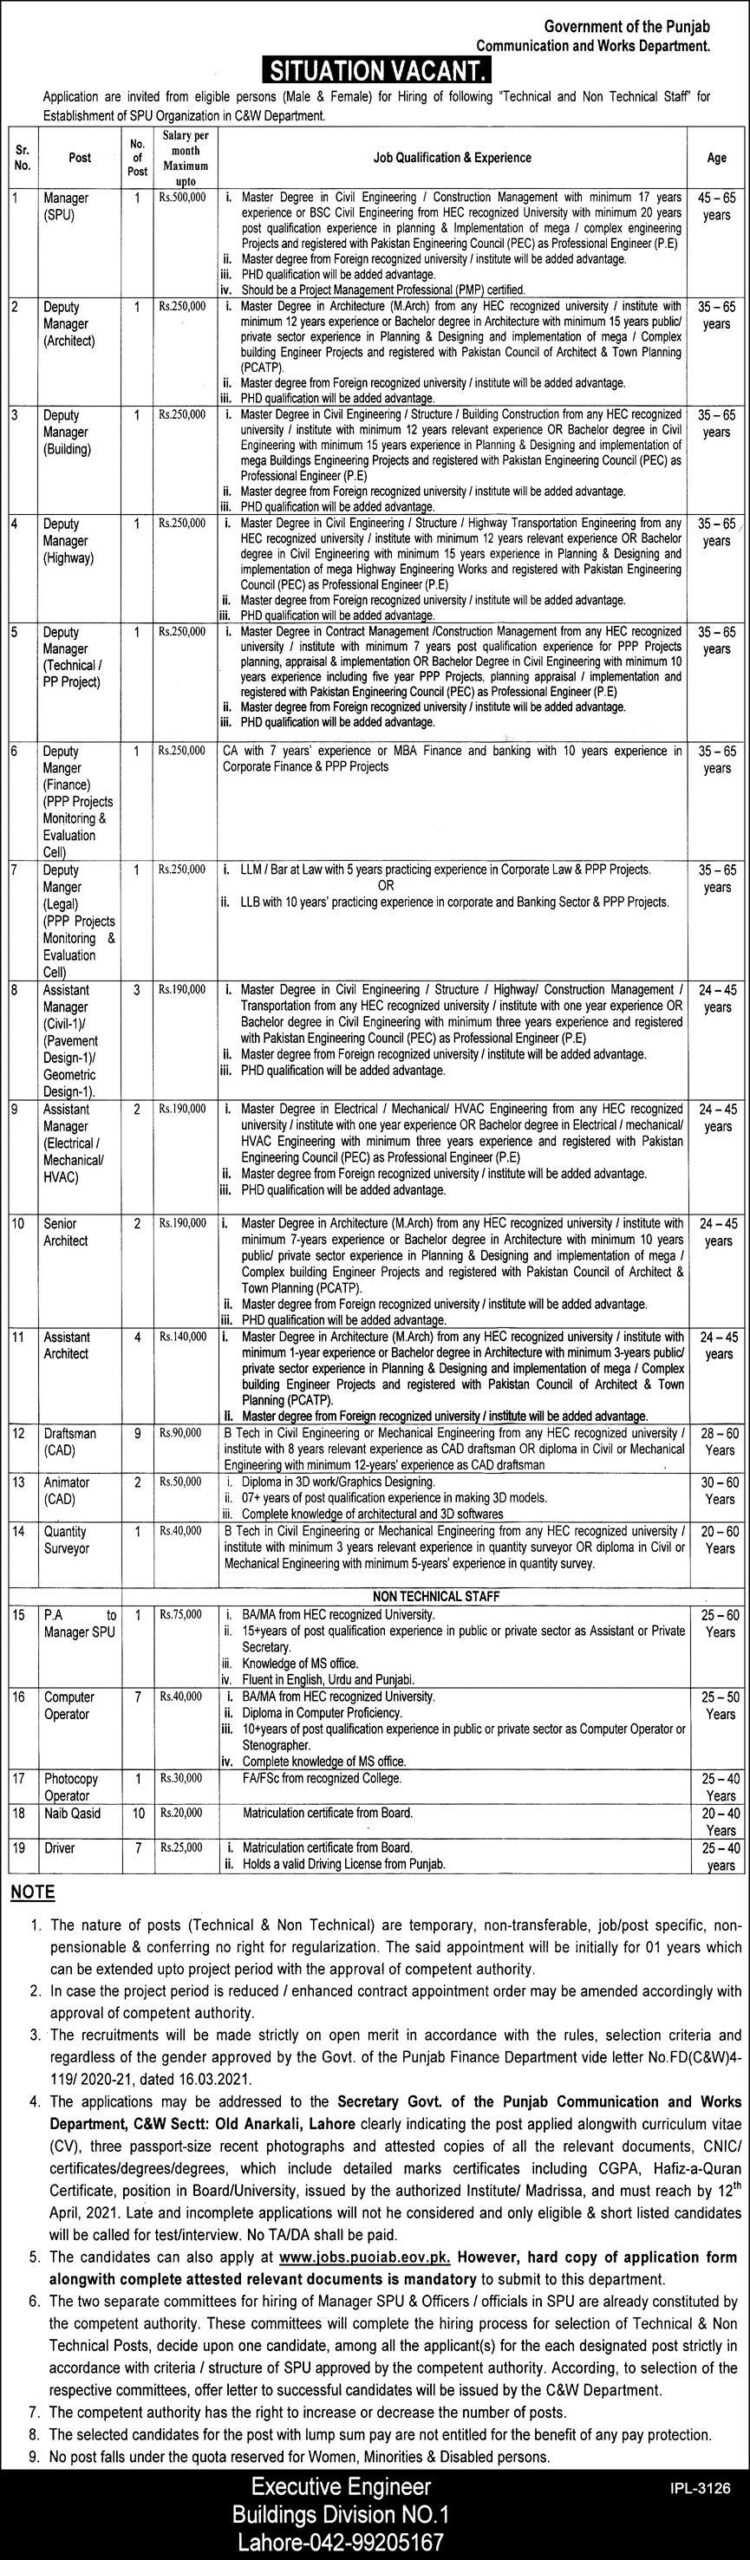 Punjab Communication & Works Department Jobs April 2021